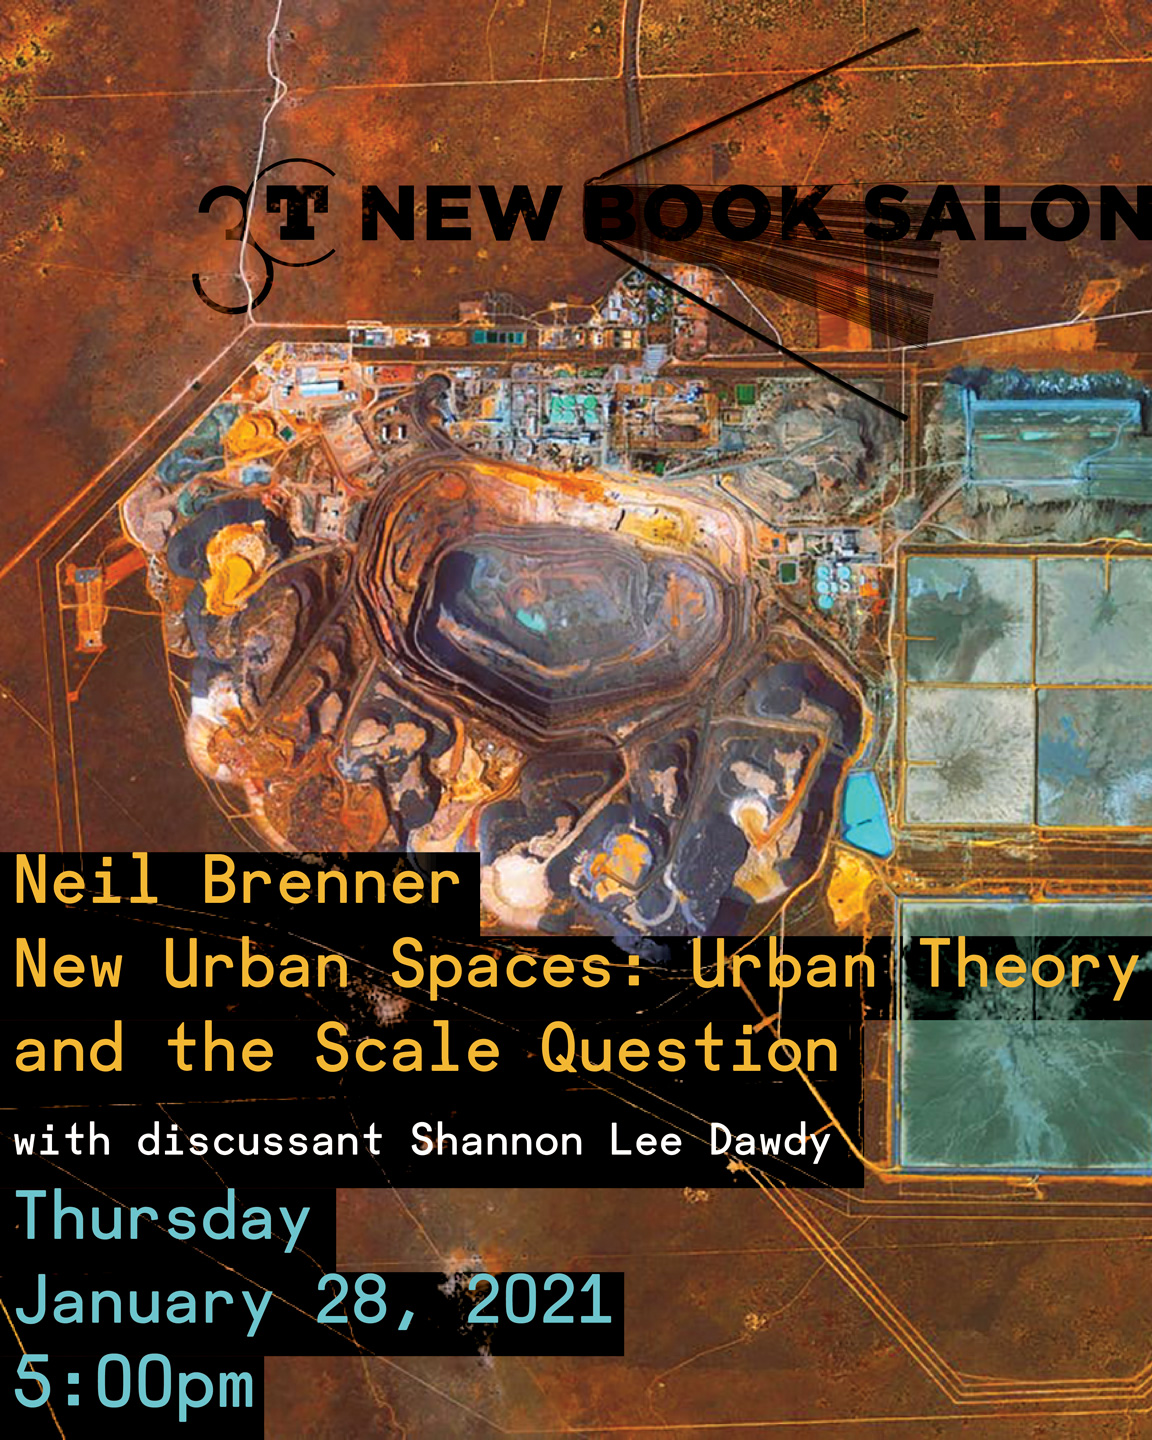 poster for 2021 Neil Brenner New Book Salon showing a birdseye view of a quarry